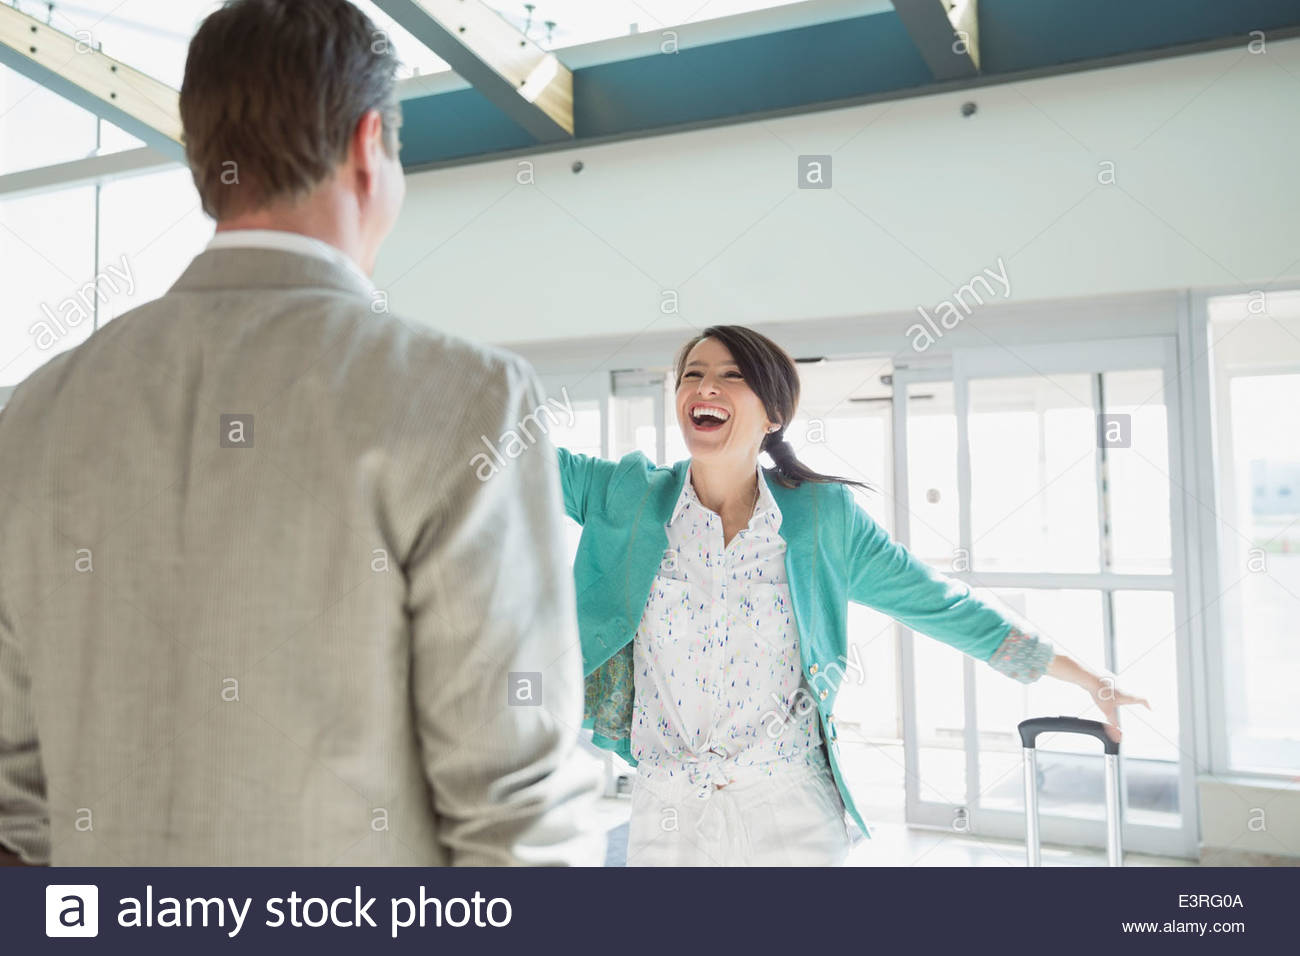 Enthusiastic woman greeting man in airport - Stock Image